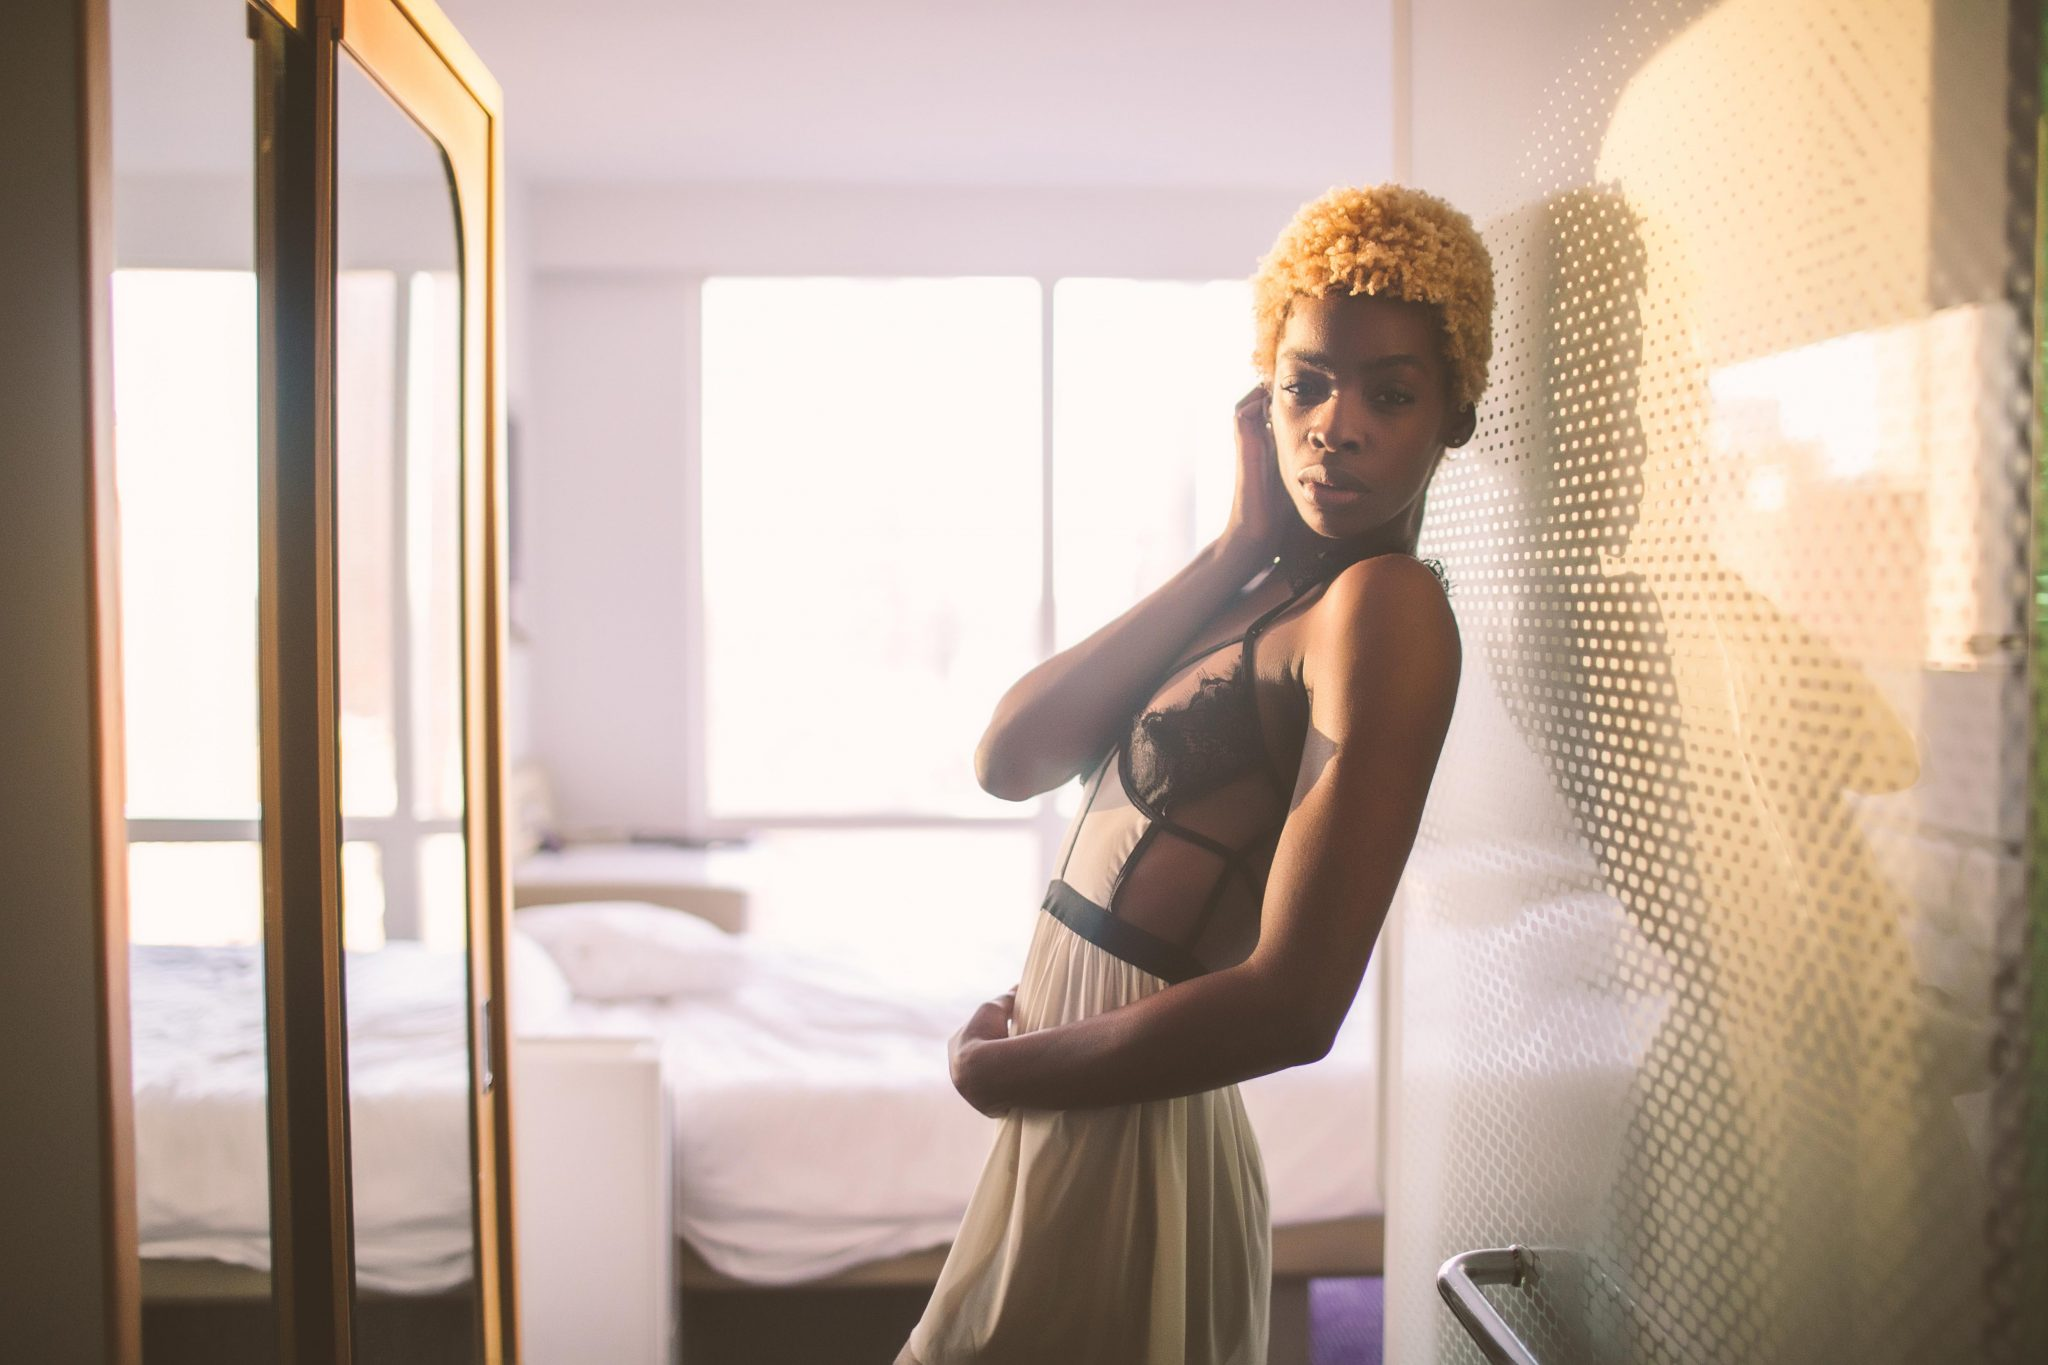 A sultry model taking a boudoir photo in a Manhattan hotel